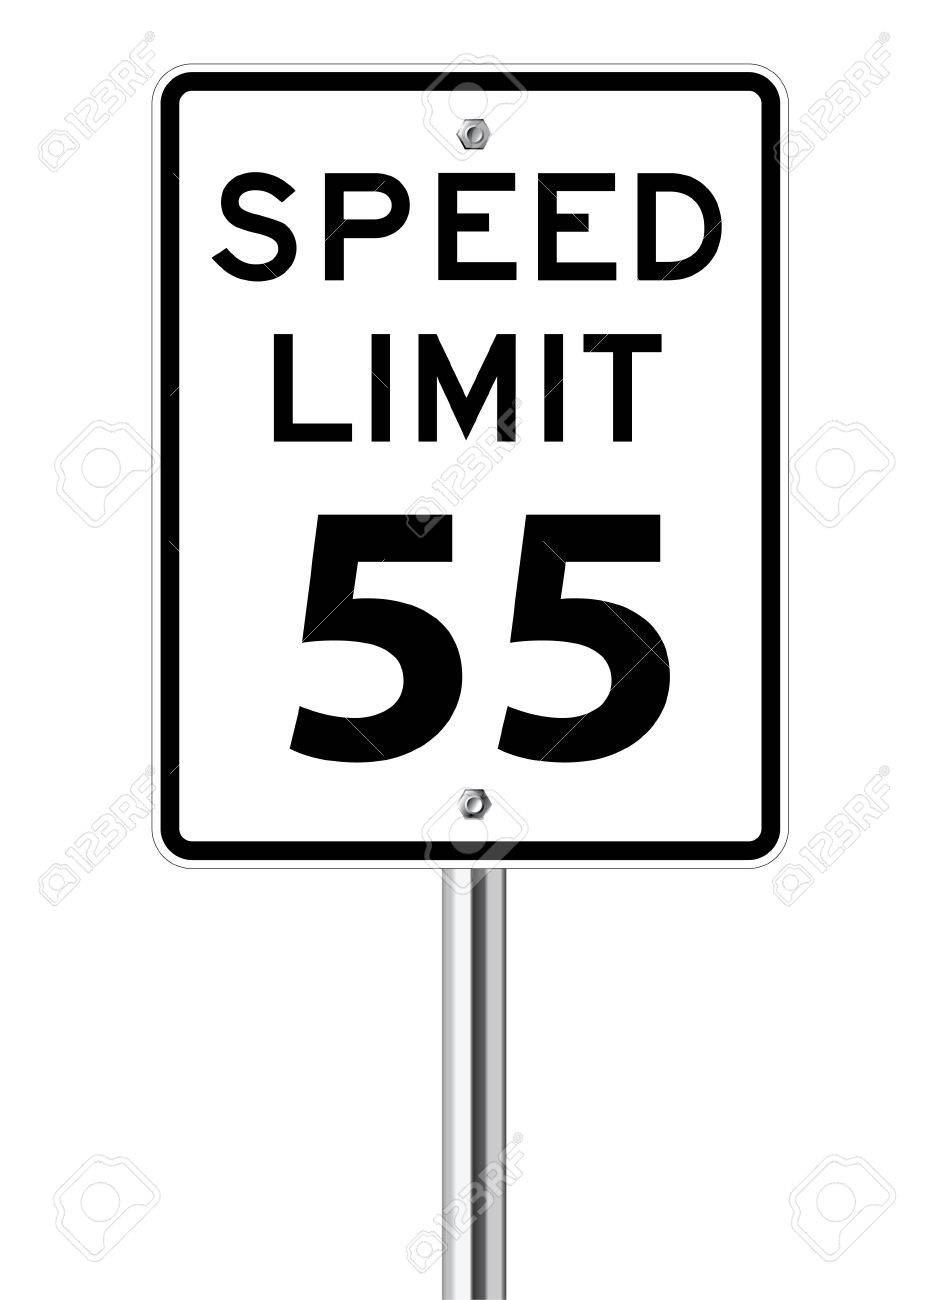 Speed limit 55 traffic sign on white.